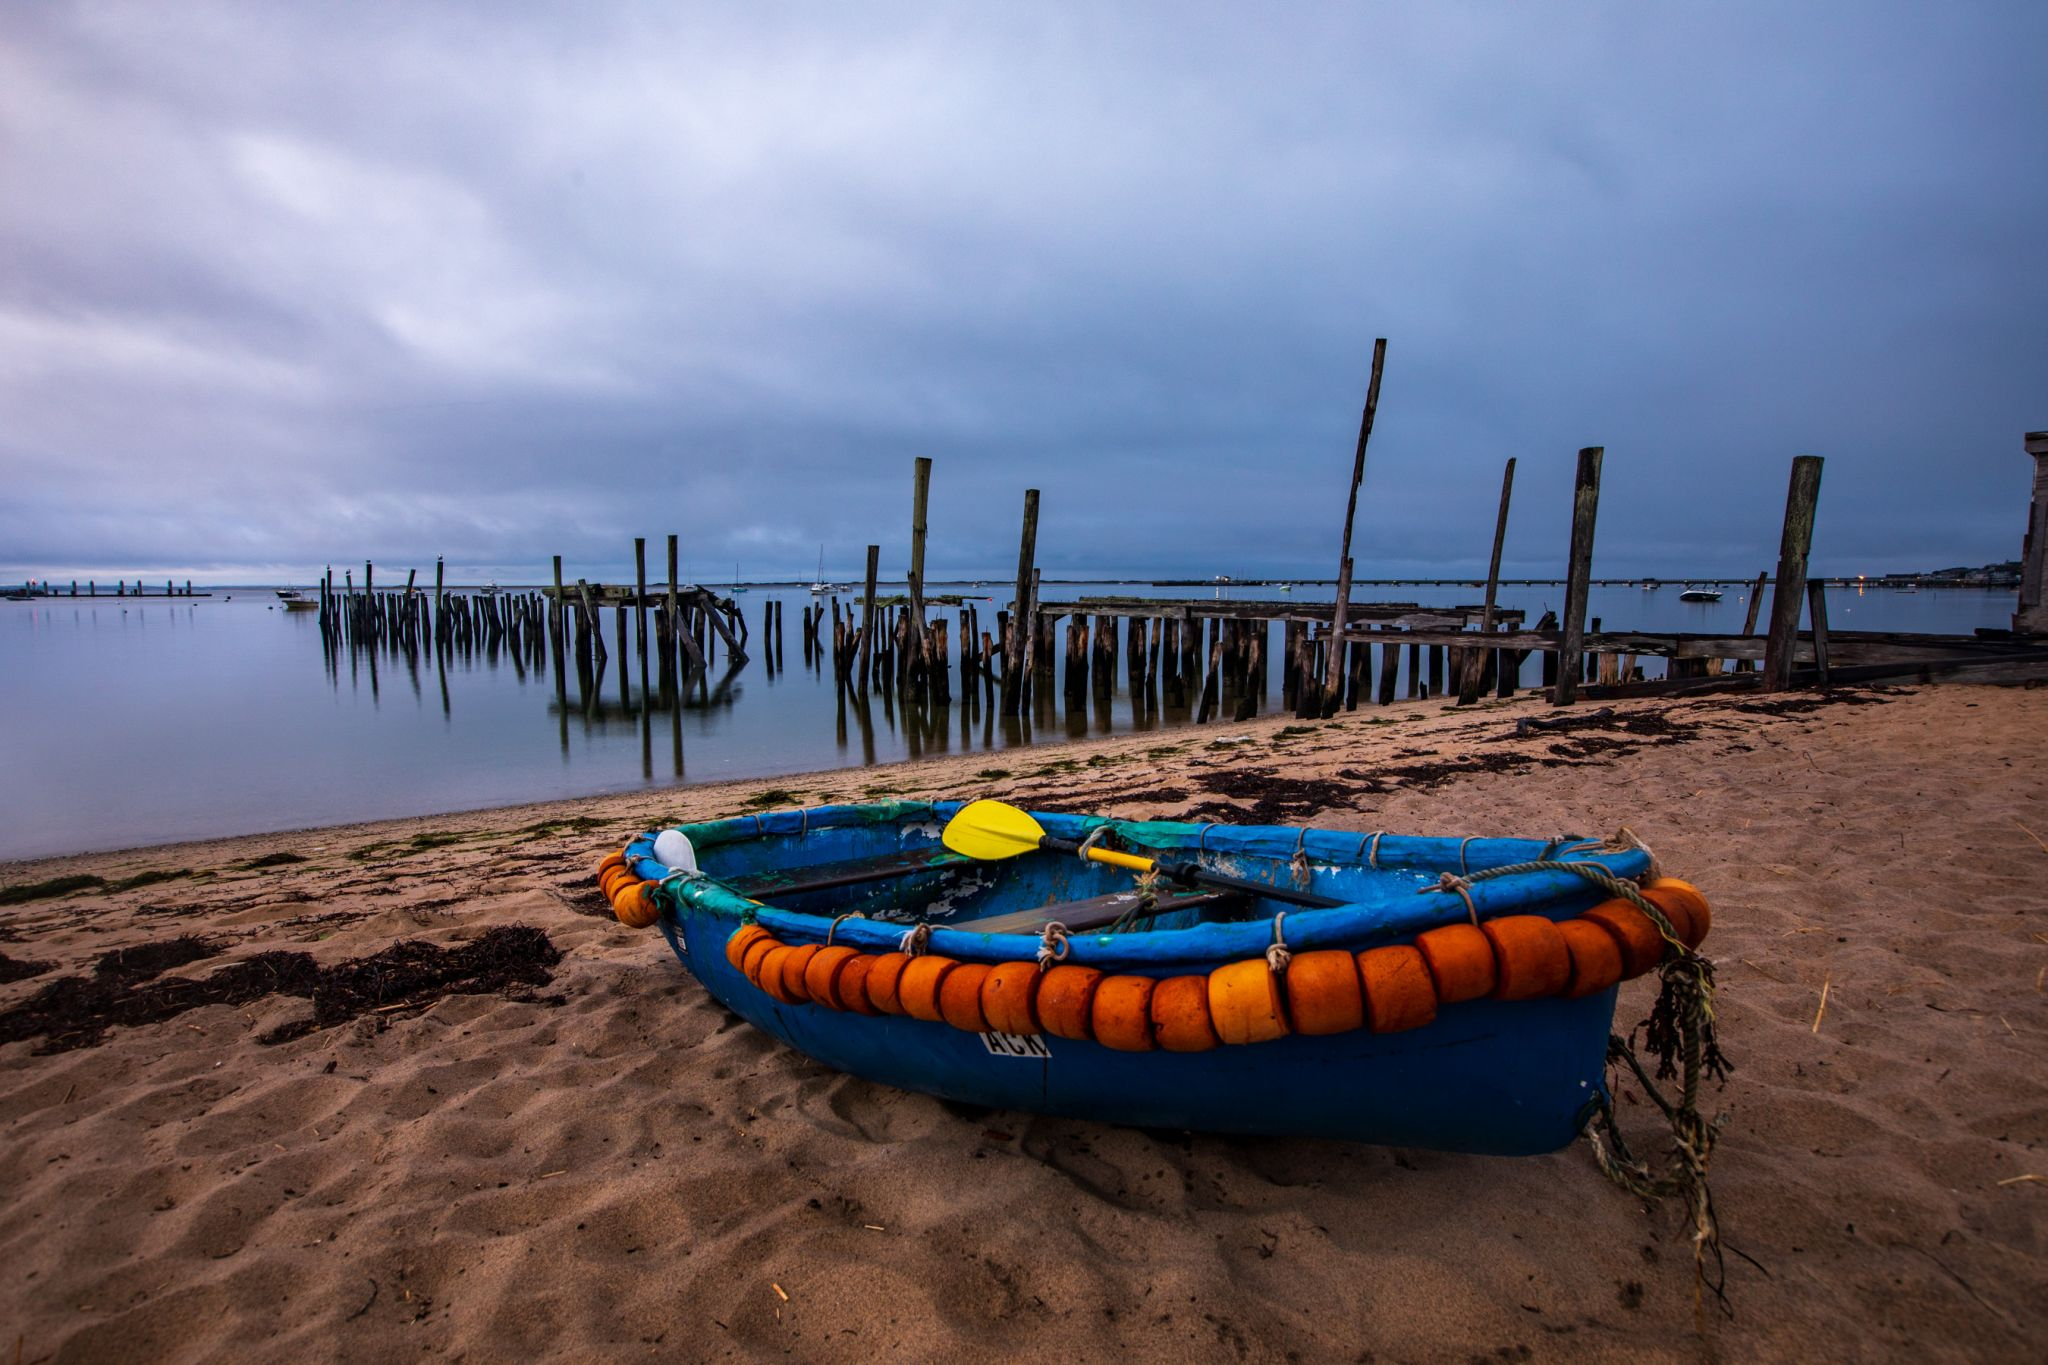 Providencetown Boat and disused pier / Jetty, Cape Cod, USA